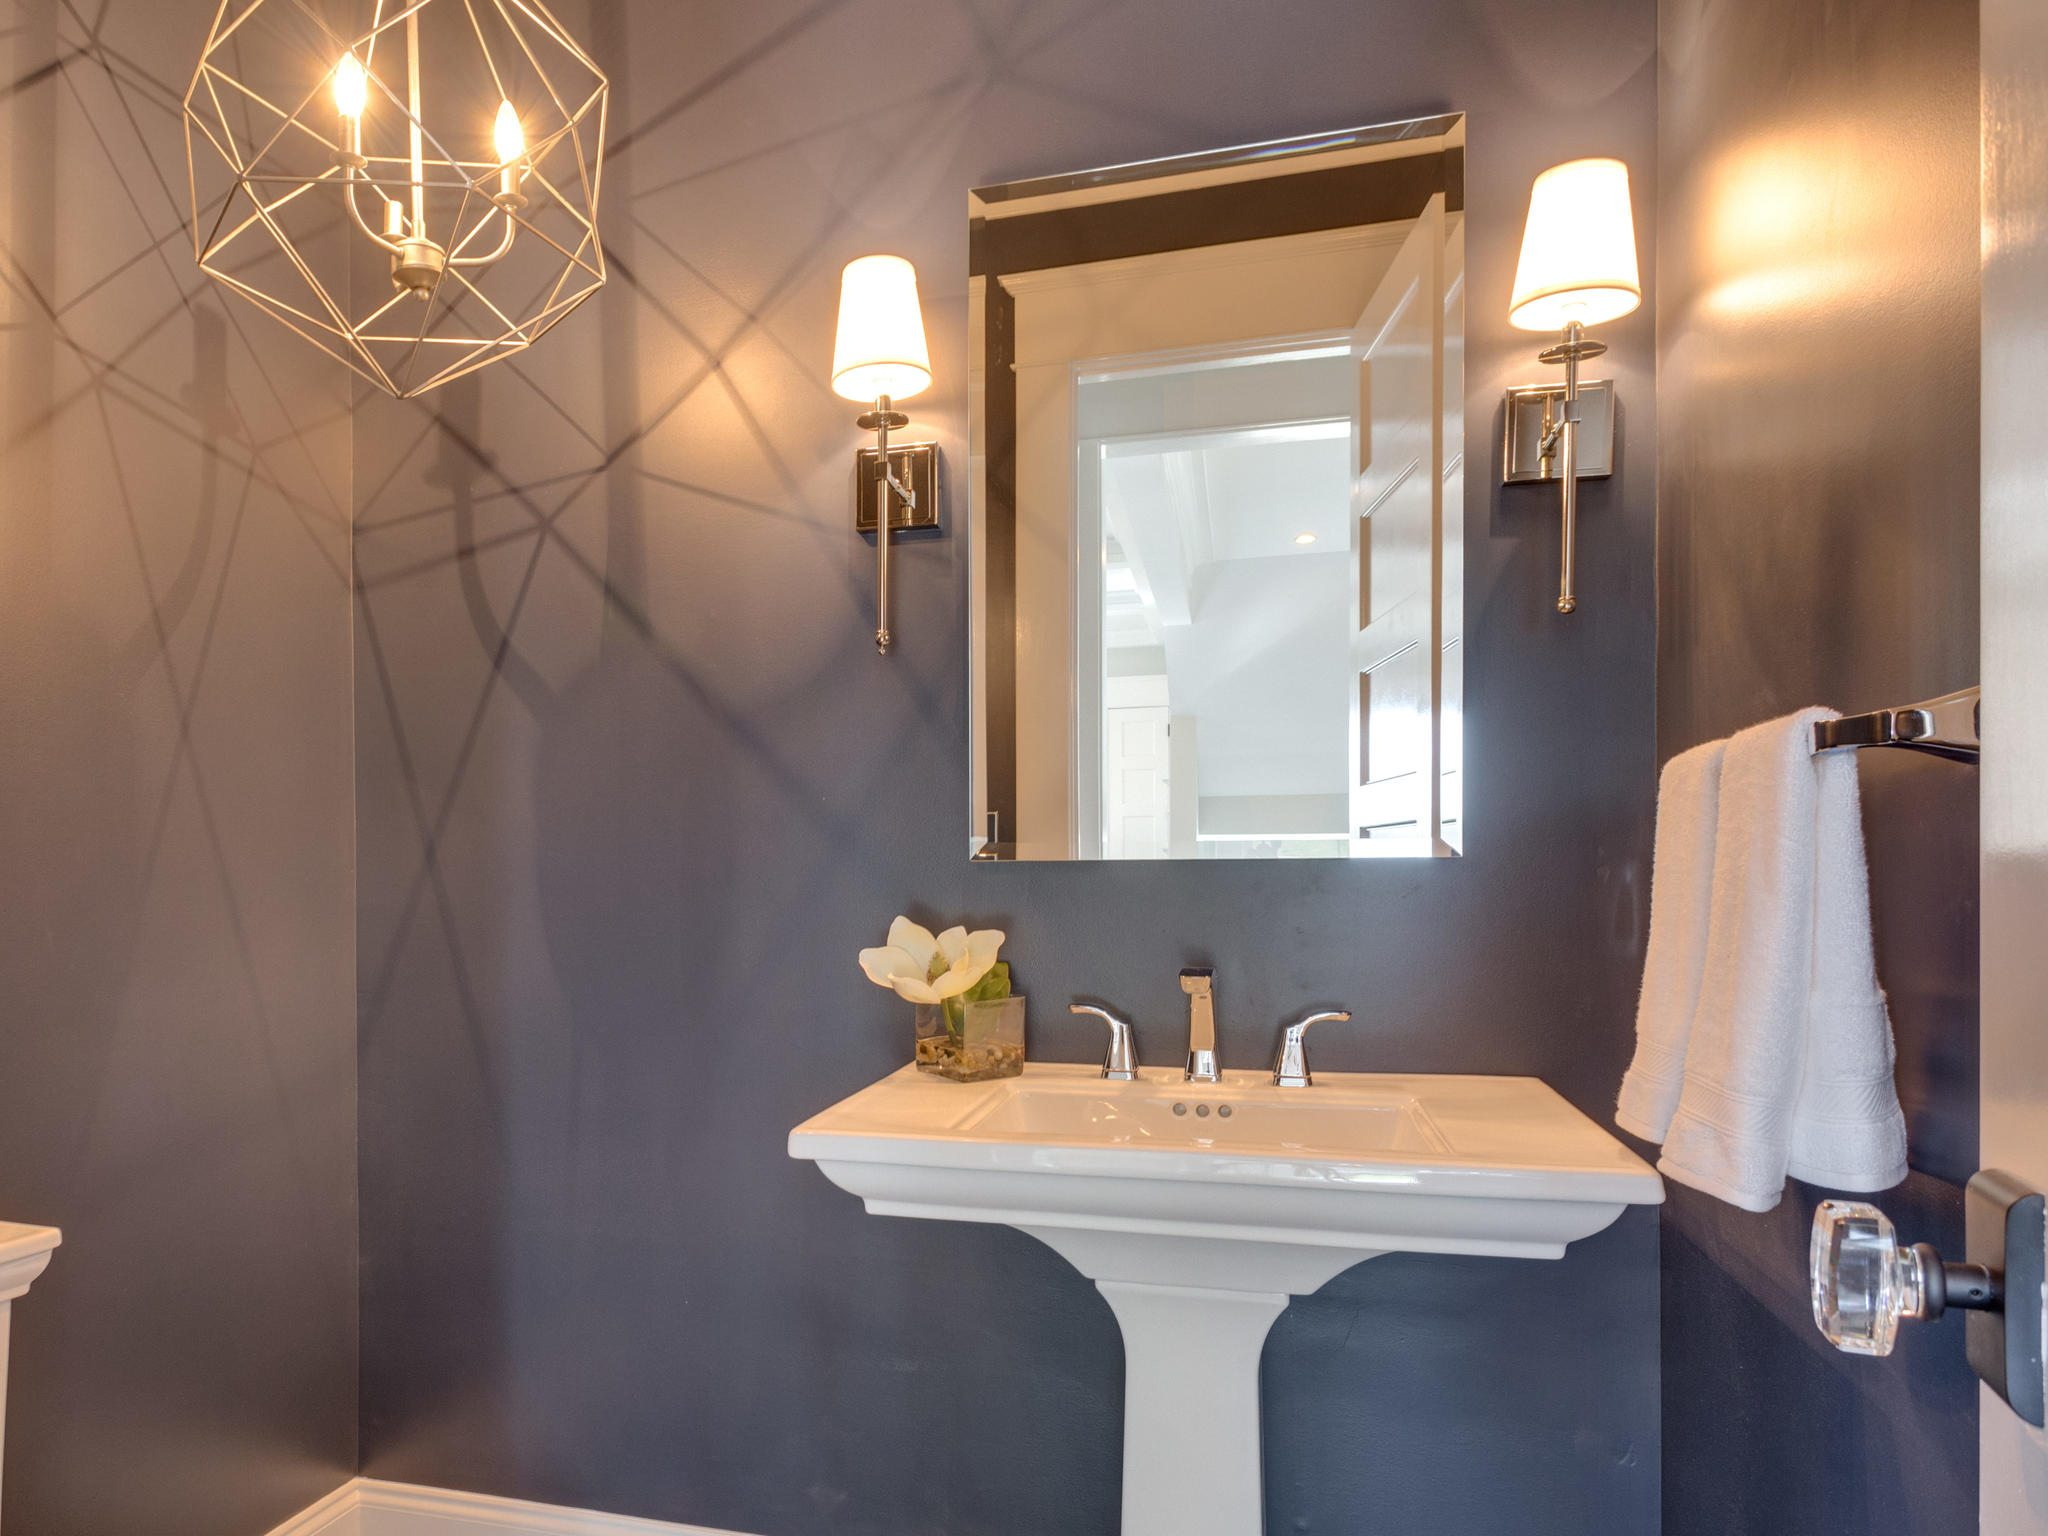 Powder Room with Blue Jeans Navy paint, Pedestal sink, and special lighting. Custom Home by Custom Builder, North Arlington, VA 22207